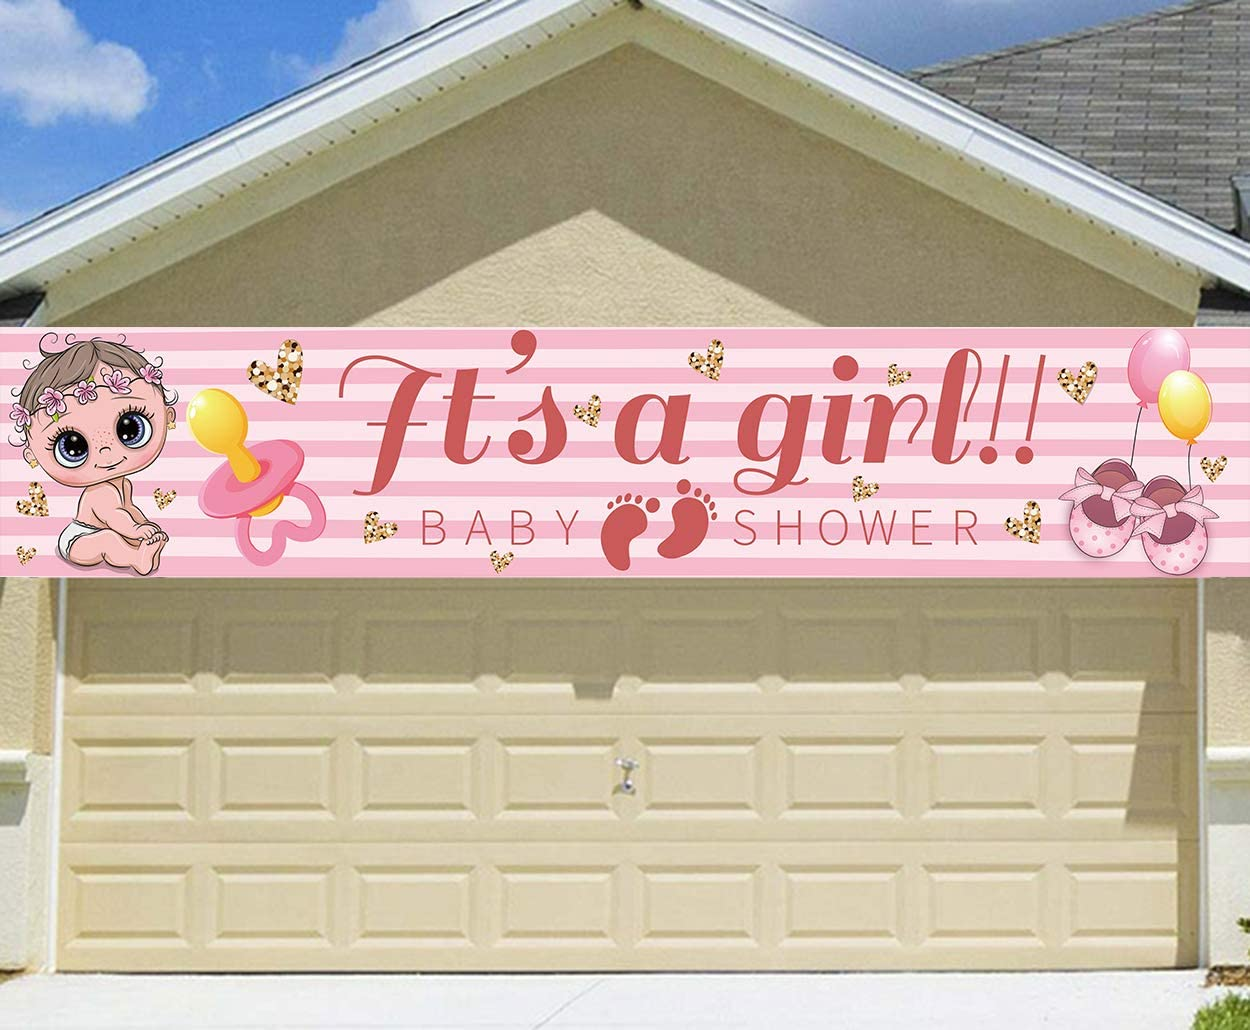 It's a Girl Yard Sign Outdoor Decorations - Large Size It's a Gi